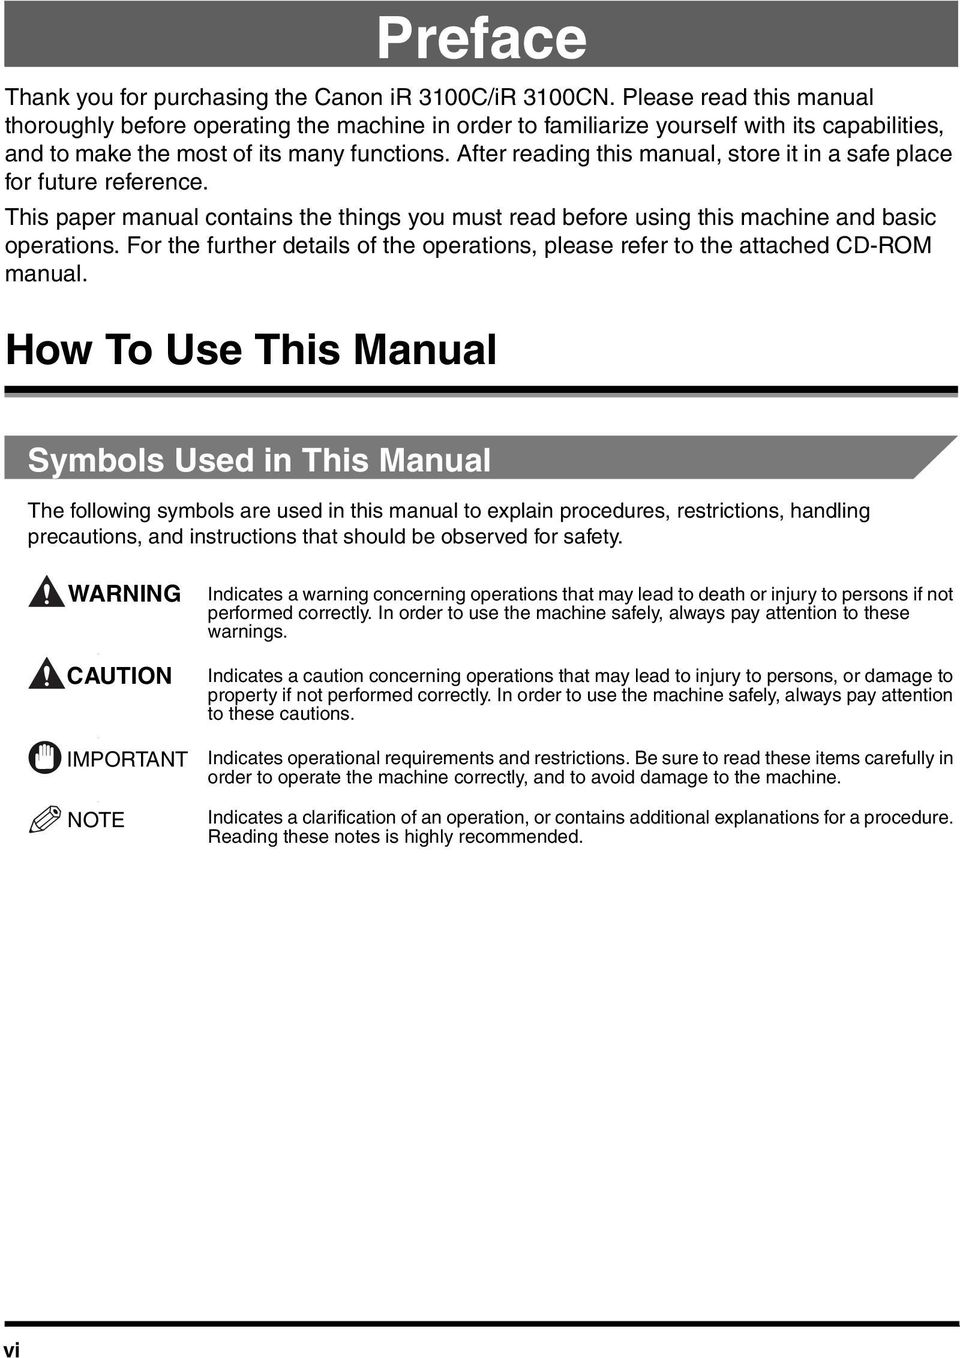 After reading this manual, store it in a safe place for future reference. This paper manual contains the things you must read before using this machine and basic operations.